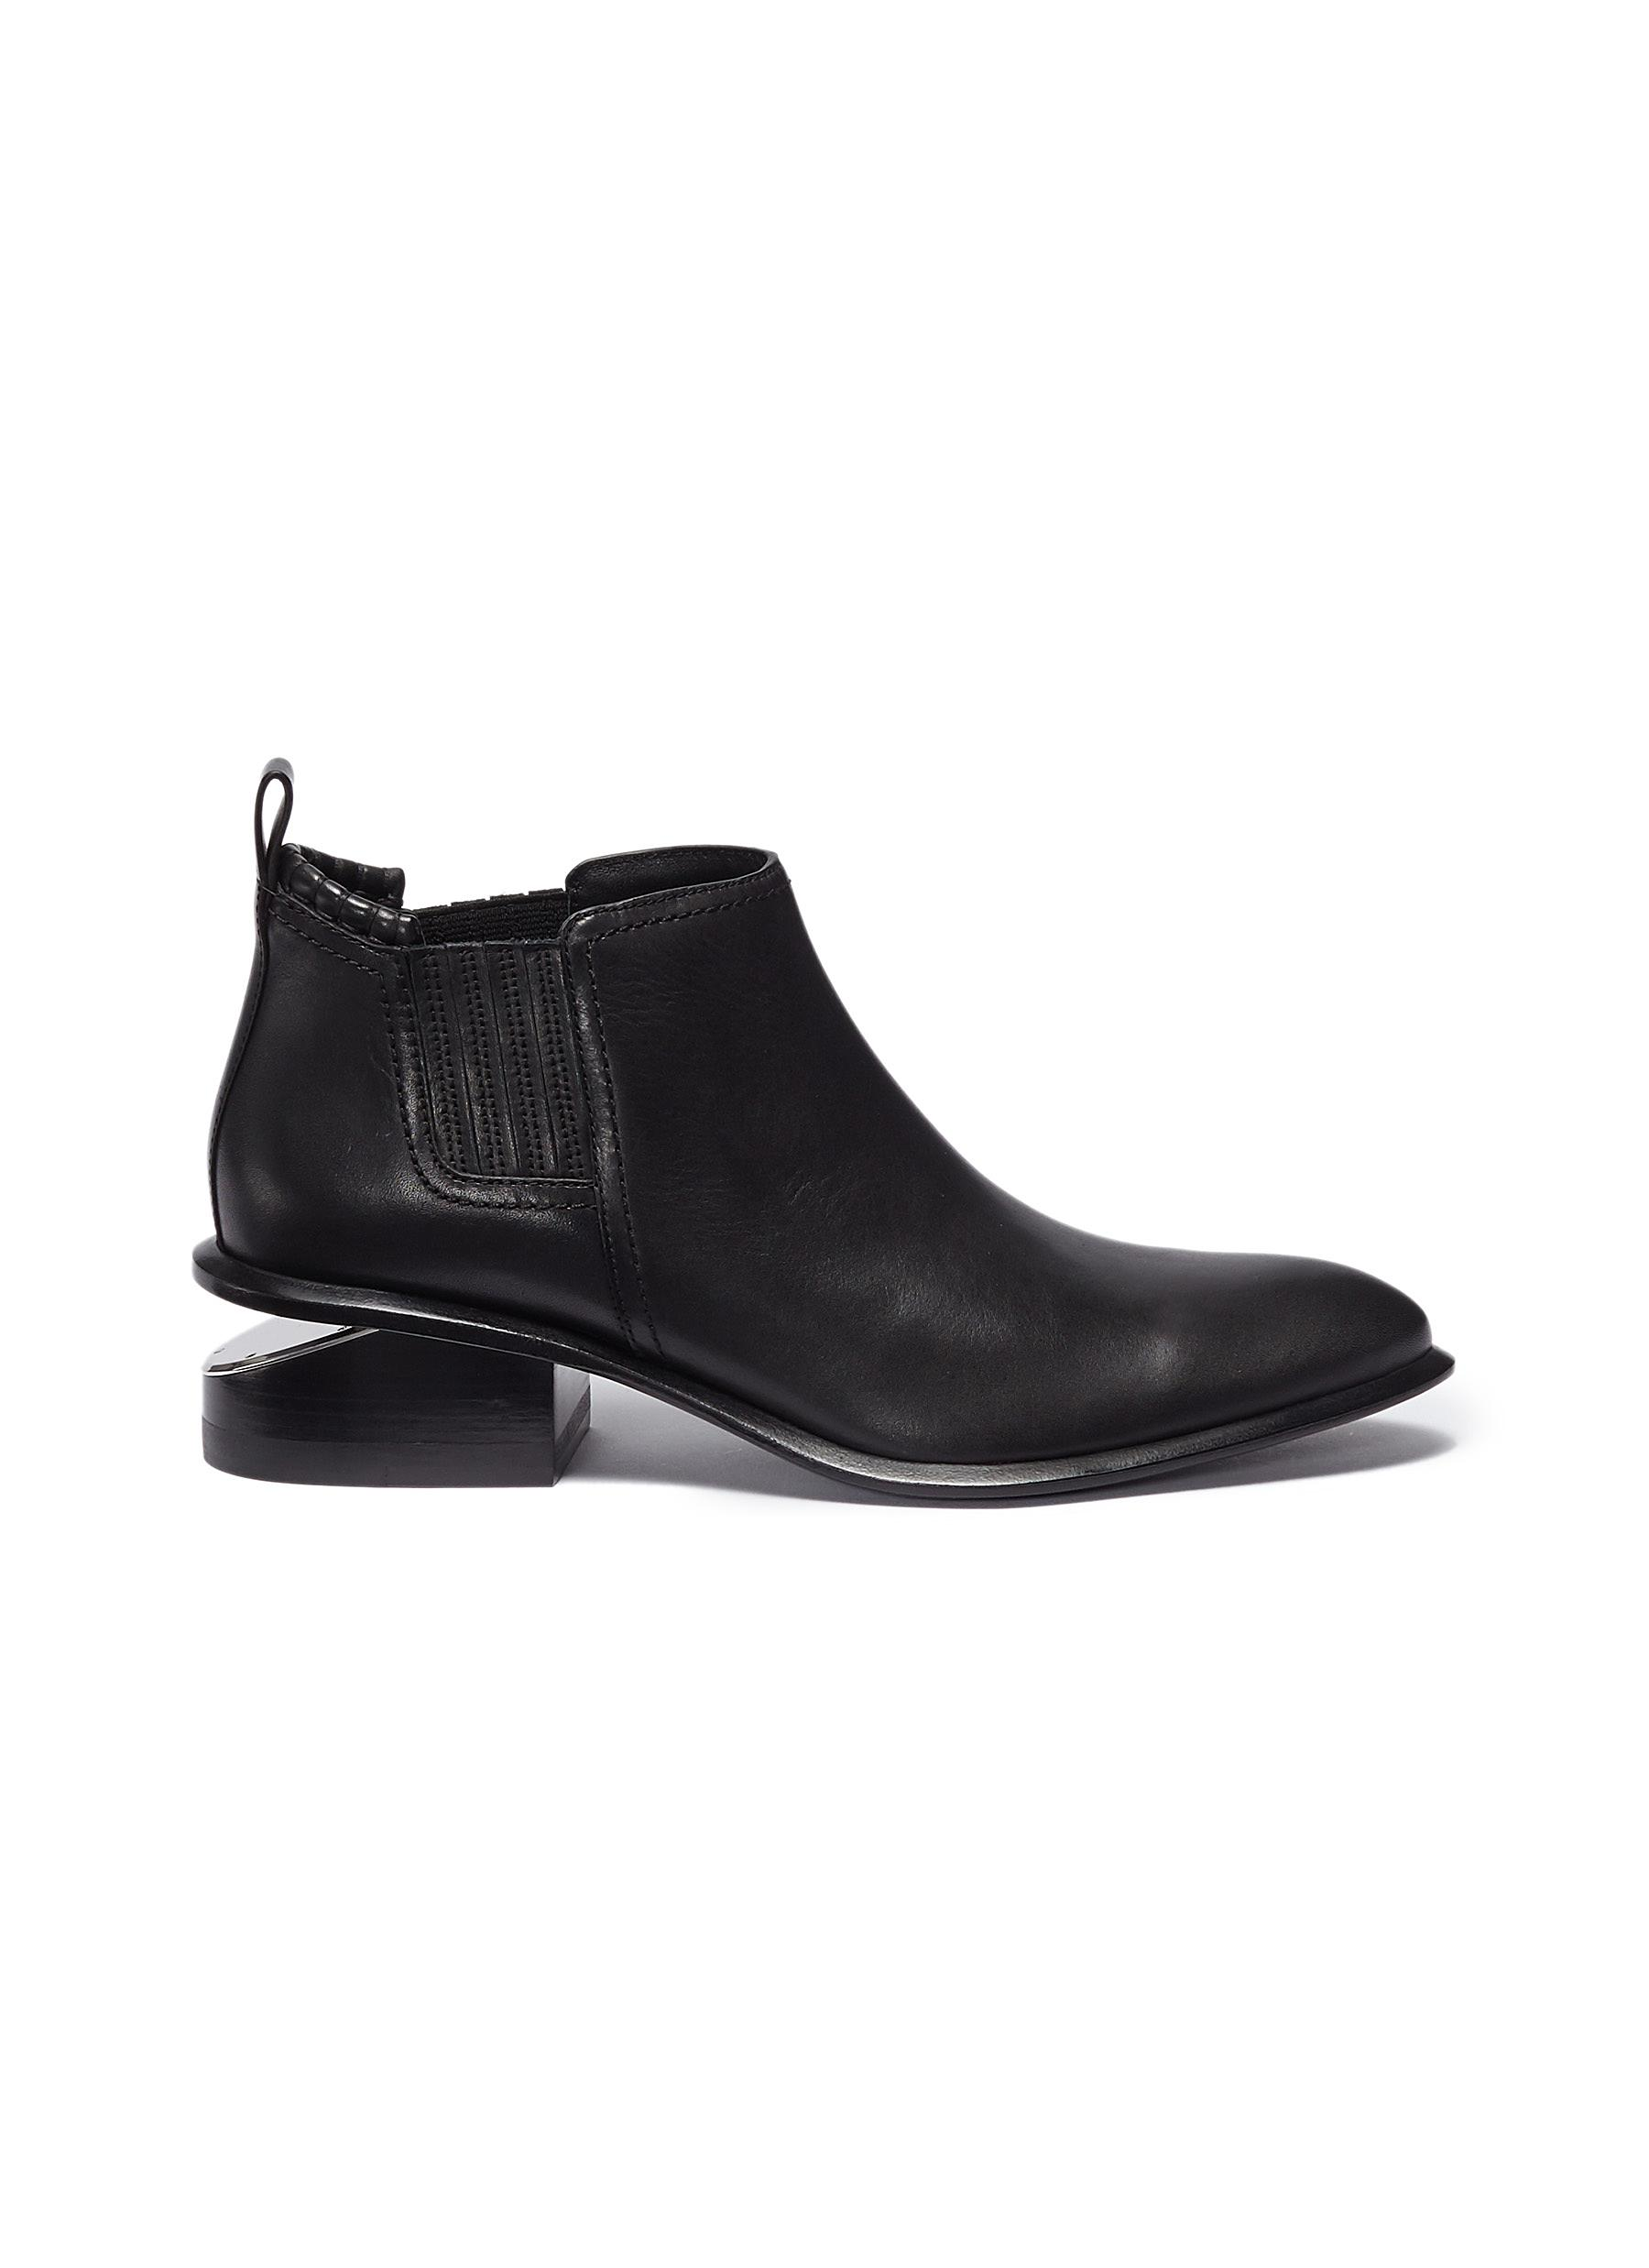 Kori cutout heel leather Chelsea boots by Alexanderwang